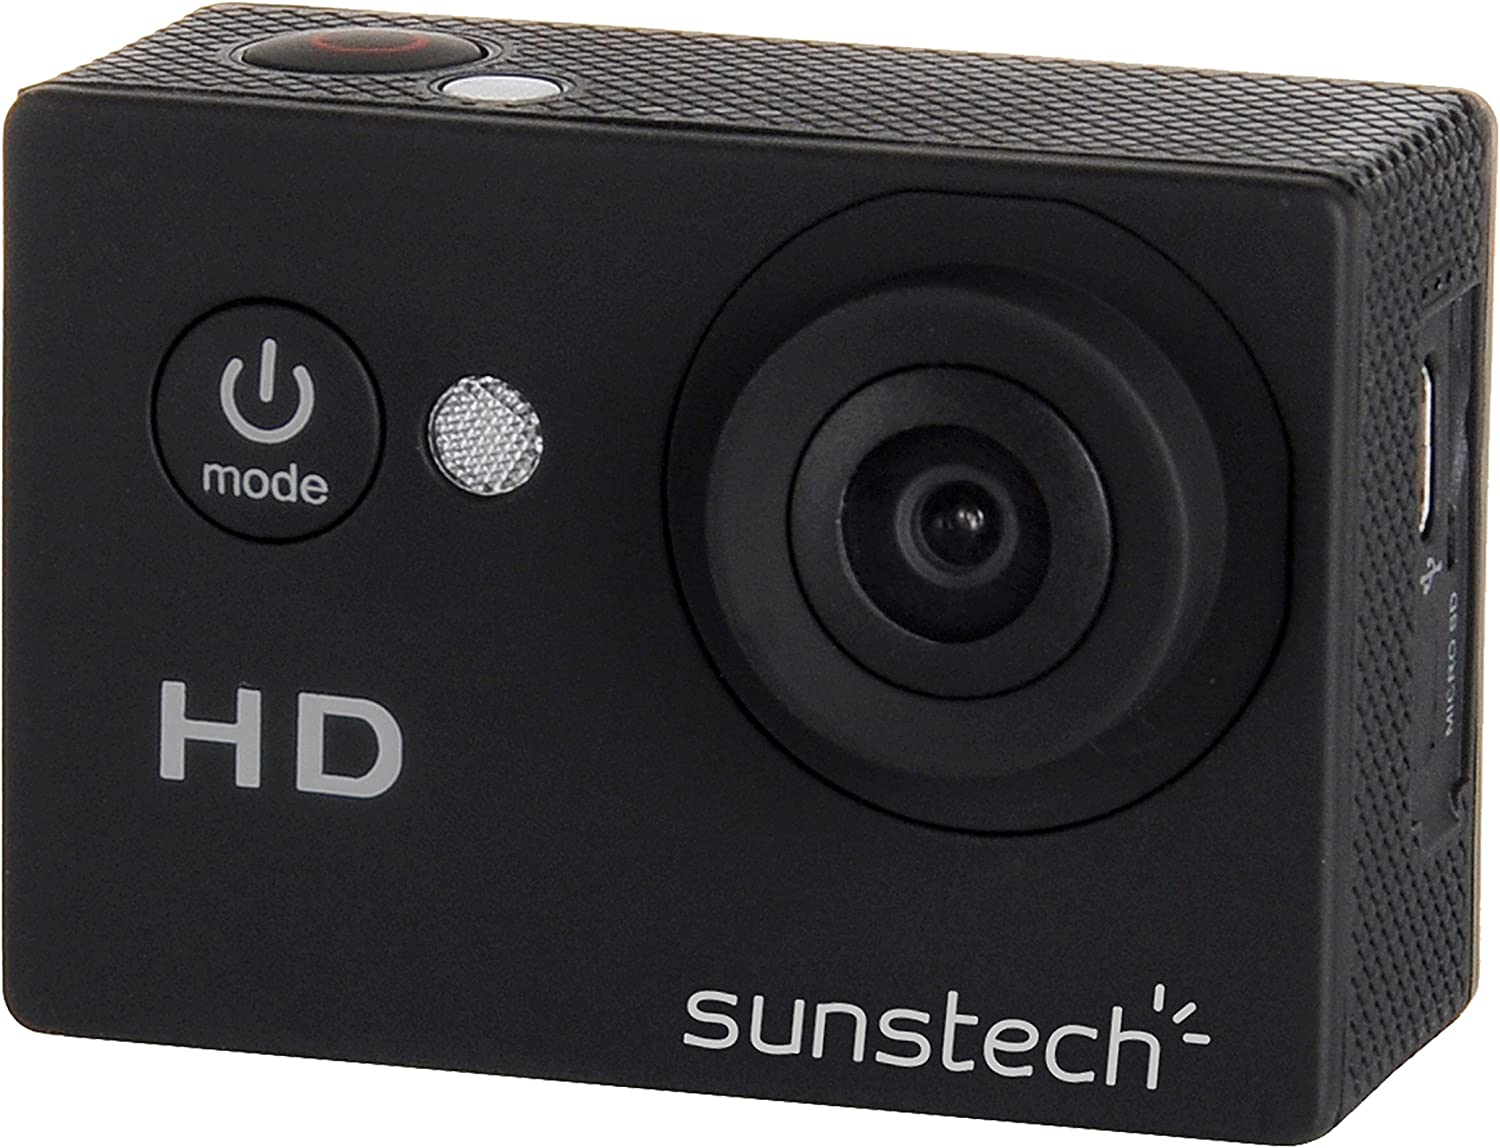 Sunstech ACTIONCAM5BK - Cámara deportiva (5 MP, pantalla de 2